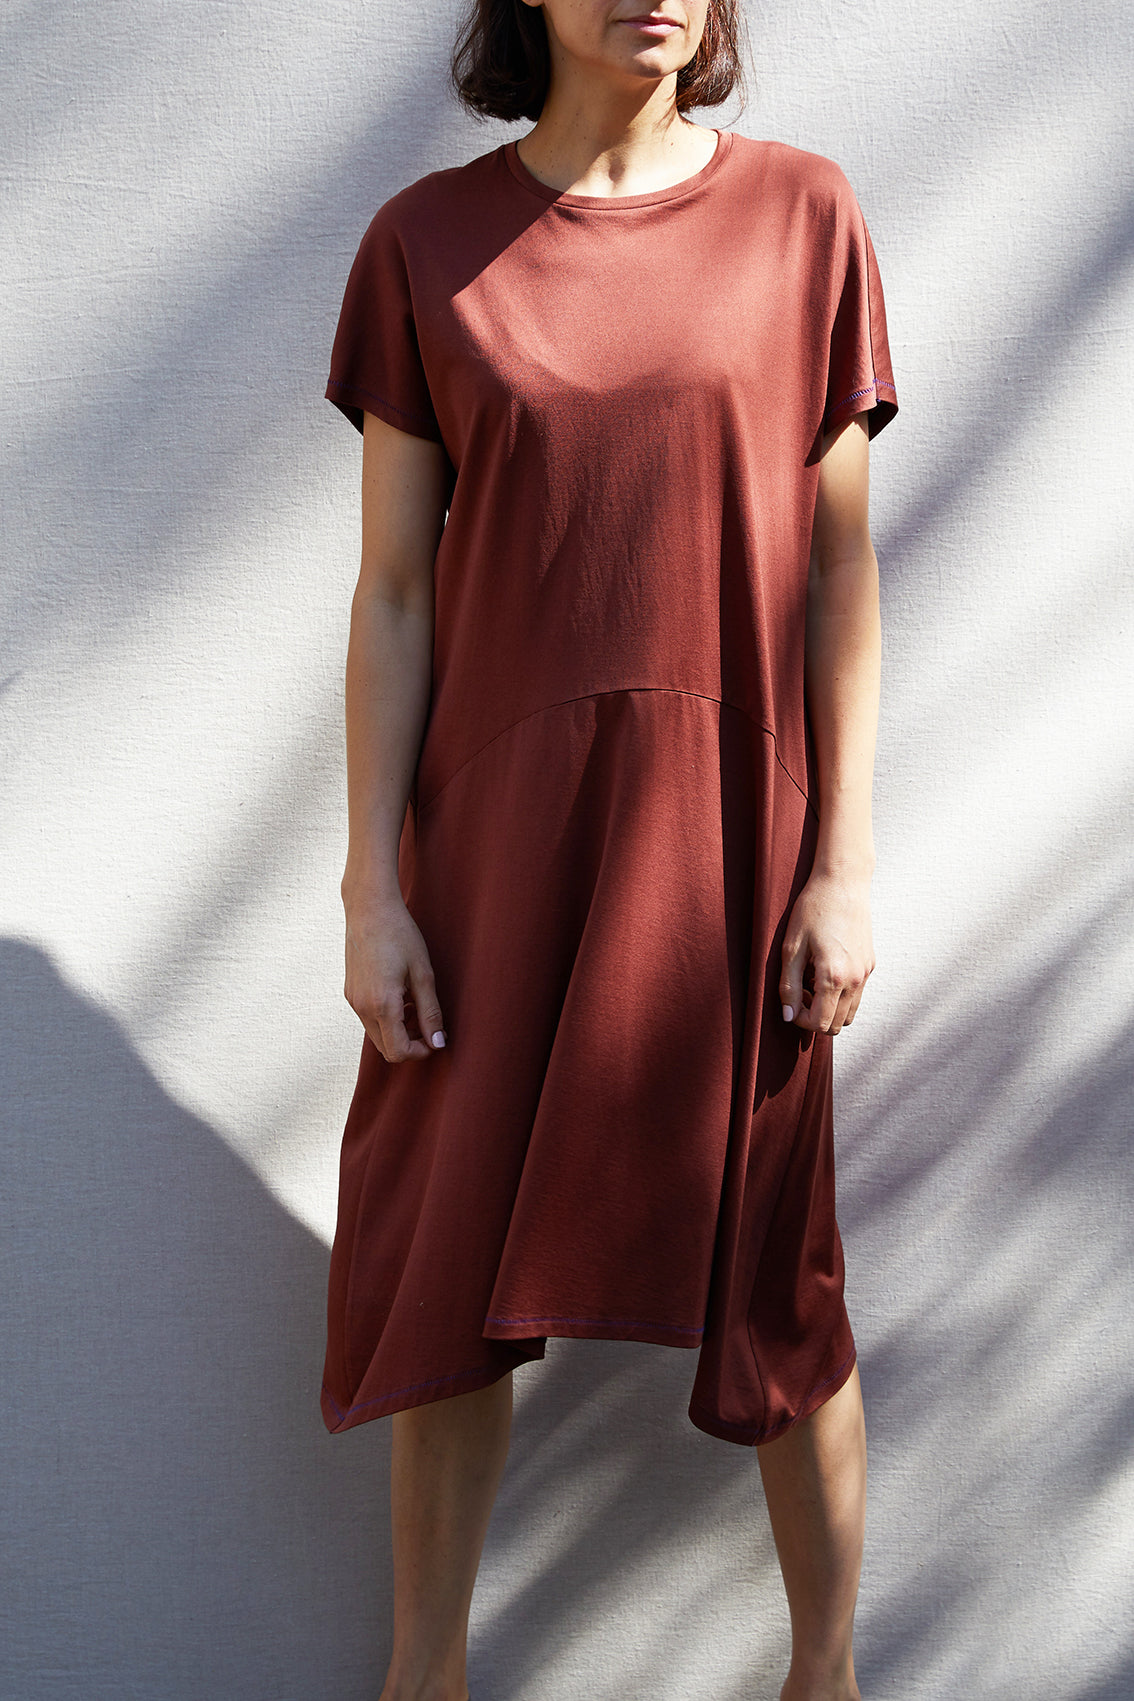 Suelto Dress – Terracota